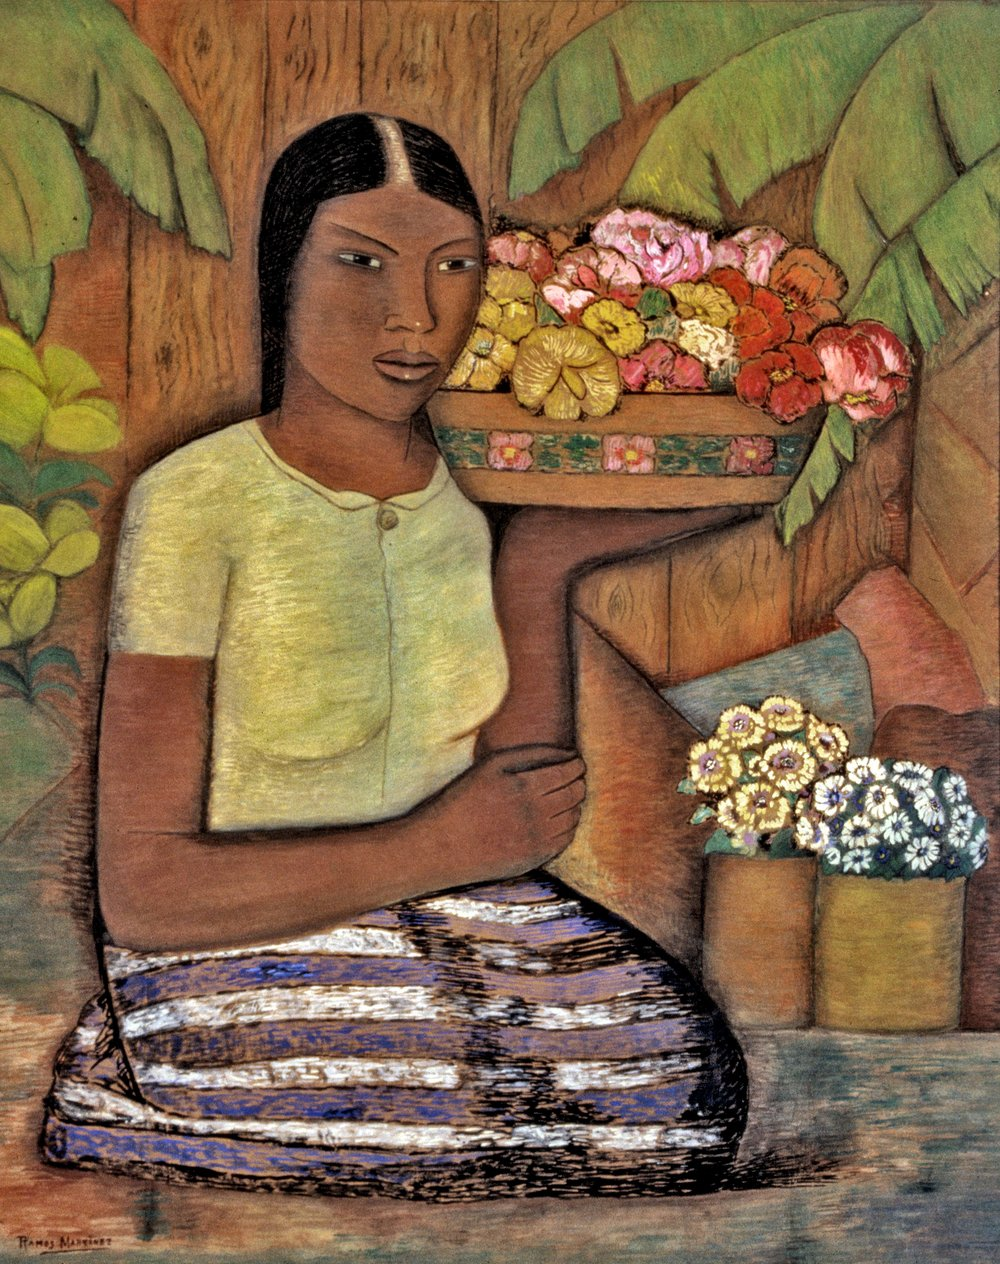 María Entre Flores / Maria Amidst the Flowers  ca. 1930 tempera and charcoal on board / temple y carbón sobre tabla 37 x 29.5 inches; 94 x 74.9 centímetros Private collection